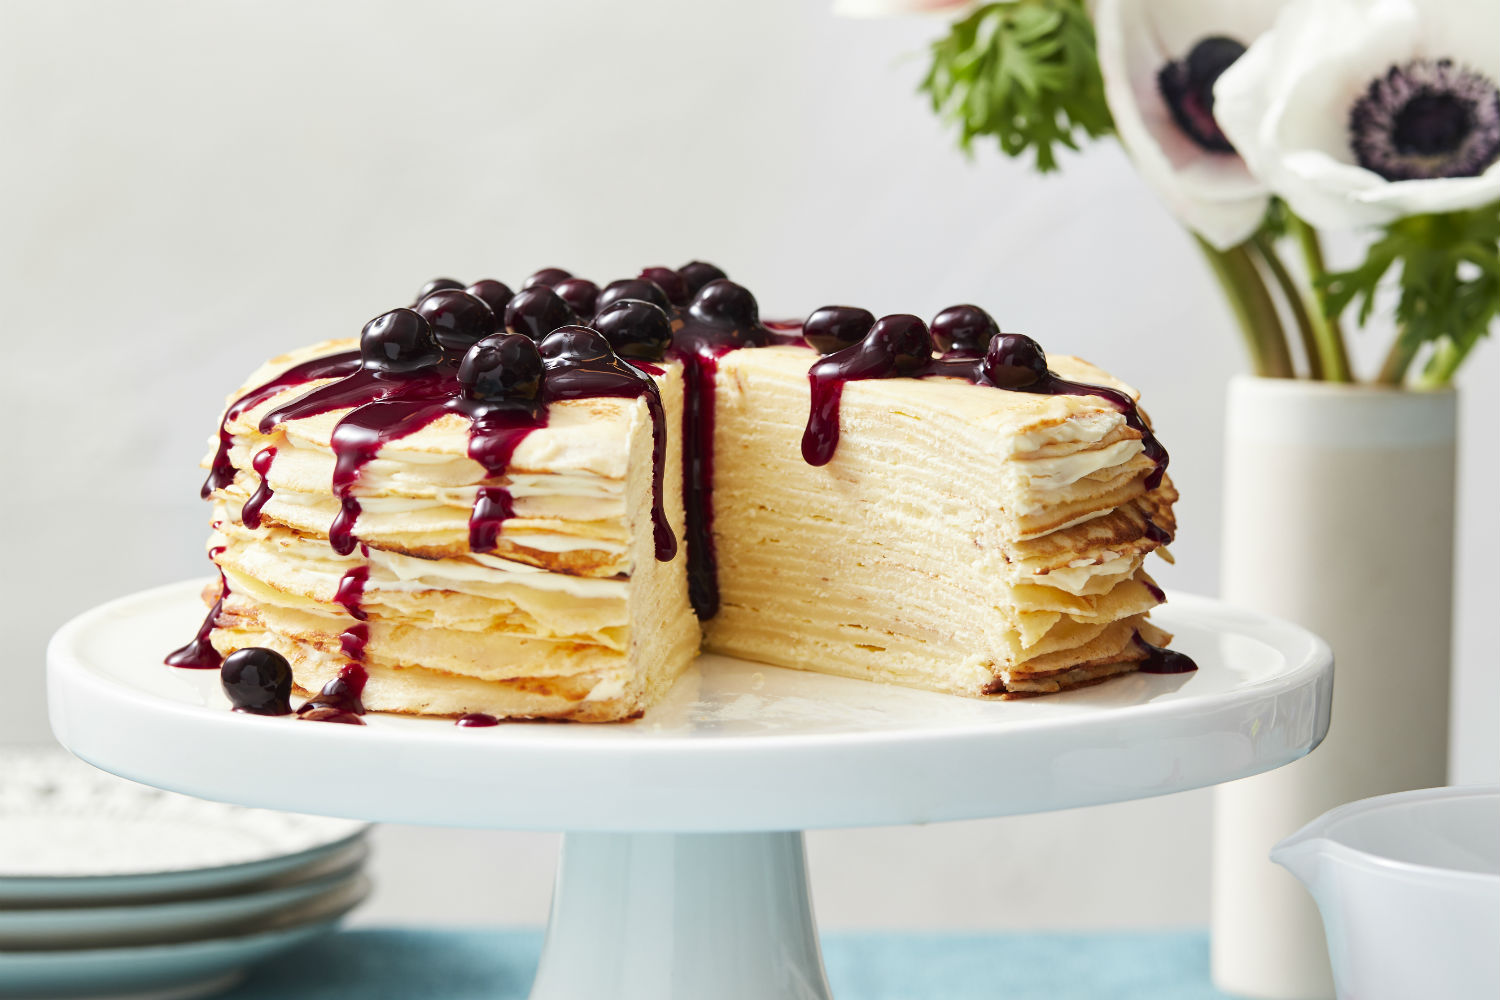 Layered Crepe Cake Recipes: Best Ever Layered Crepe Cake With Blueberry Sauce Recipe